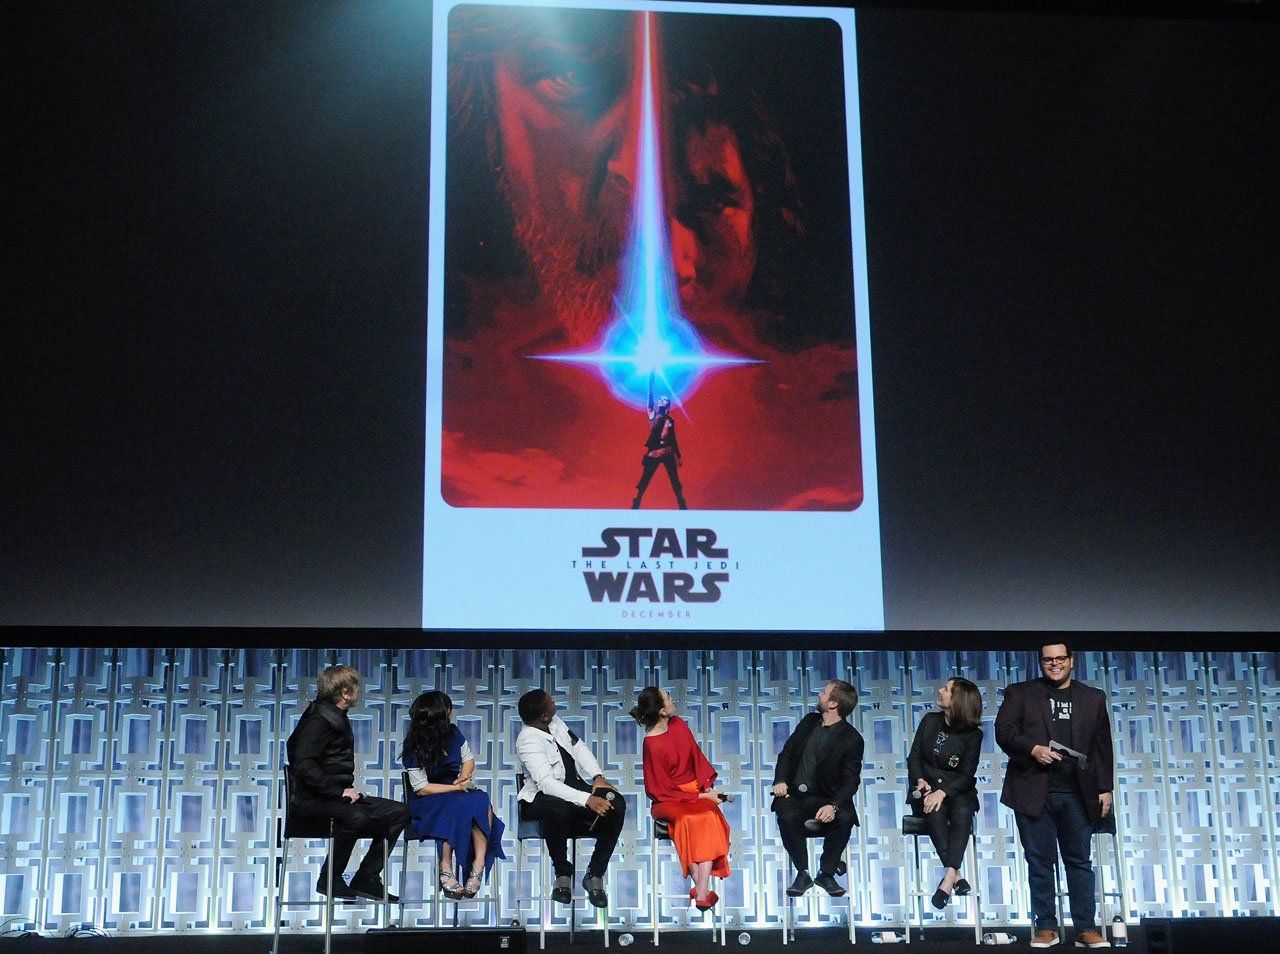 ORLANDO, FL - APRIL 14:  Mark Hamill, Kelly Marie Tran, John Boyega, Daisy Ridley, Rian Johnson, Kathleen Kennedy and Josh Gad attend the STAR WARS: THE LAST JEDI PANEL during the 2017 STAR WARS CELEBRATION at Orange County Convention Center on April 14, 2017 in Orlando, Florida.  (Photo by Gerardo Mora/Getty Images for Disney) *** Local Caption *** Mark Hamill;Kelly Marie Tran;John Boyega;Daisy Ridley;Rian Johnson;Kathleen Kennedy;Josh Gad